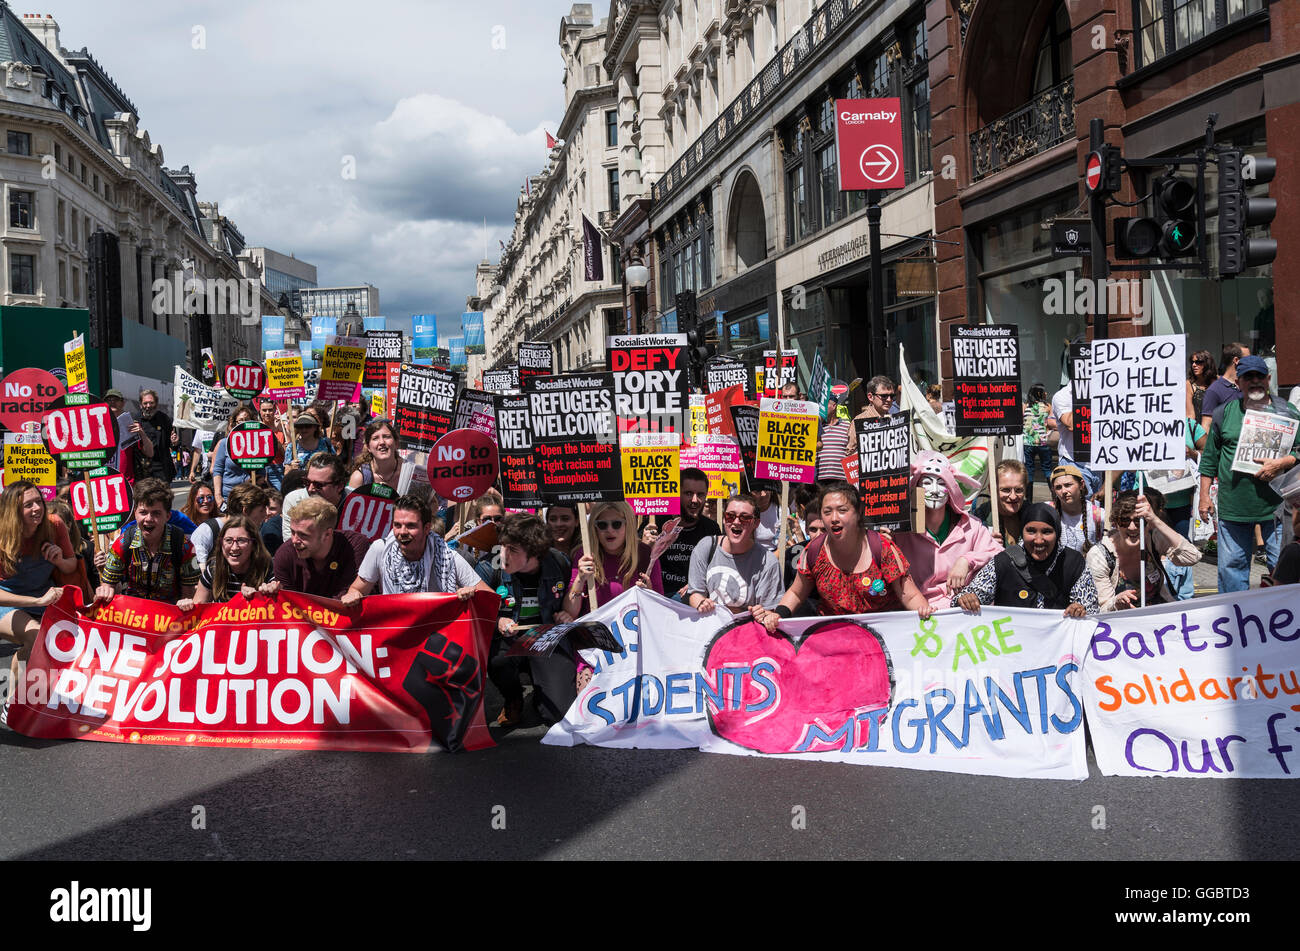 One Solution: Revolution, No More Austerity - No To Racism - Tories Must Go, demonstration organised by Peoples - Stock Image